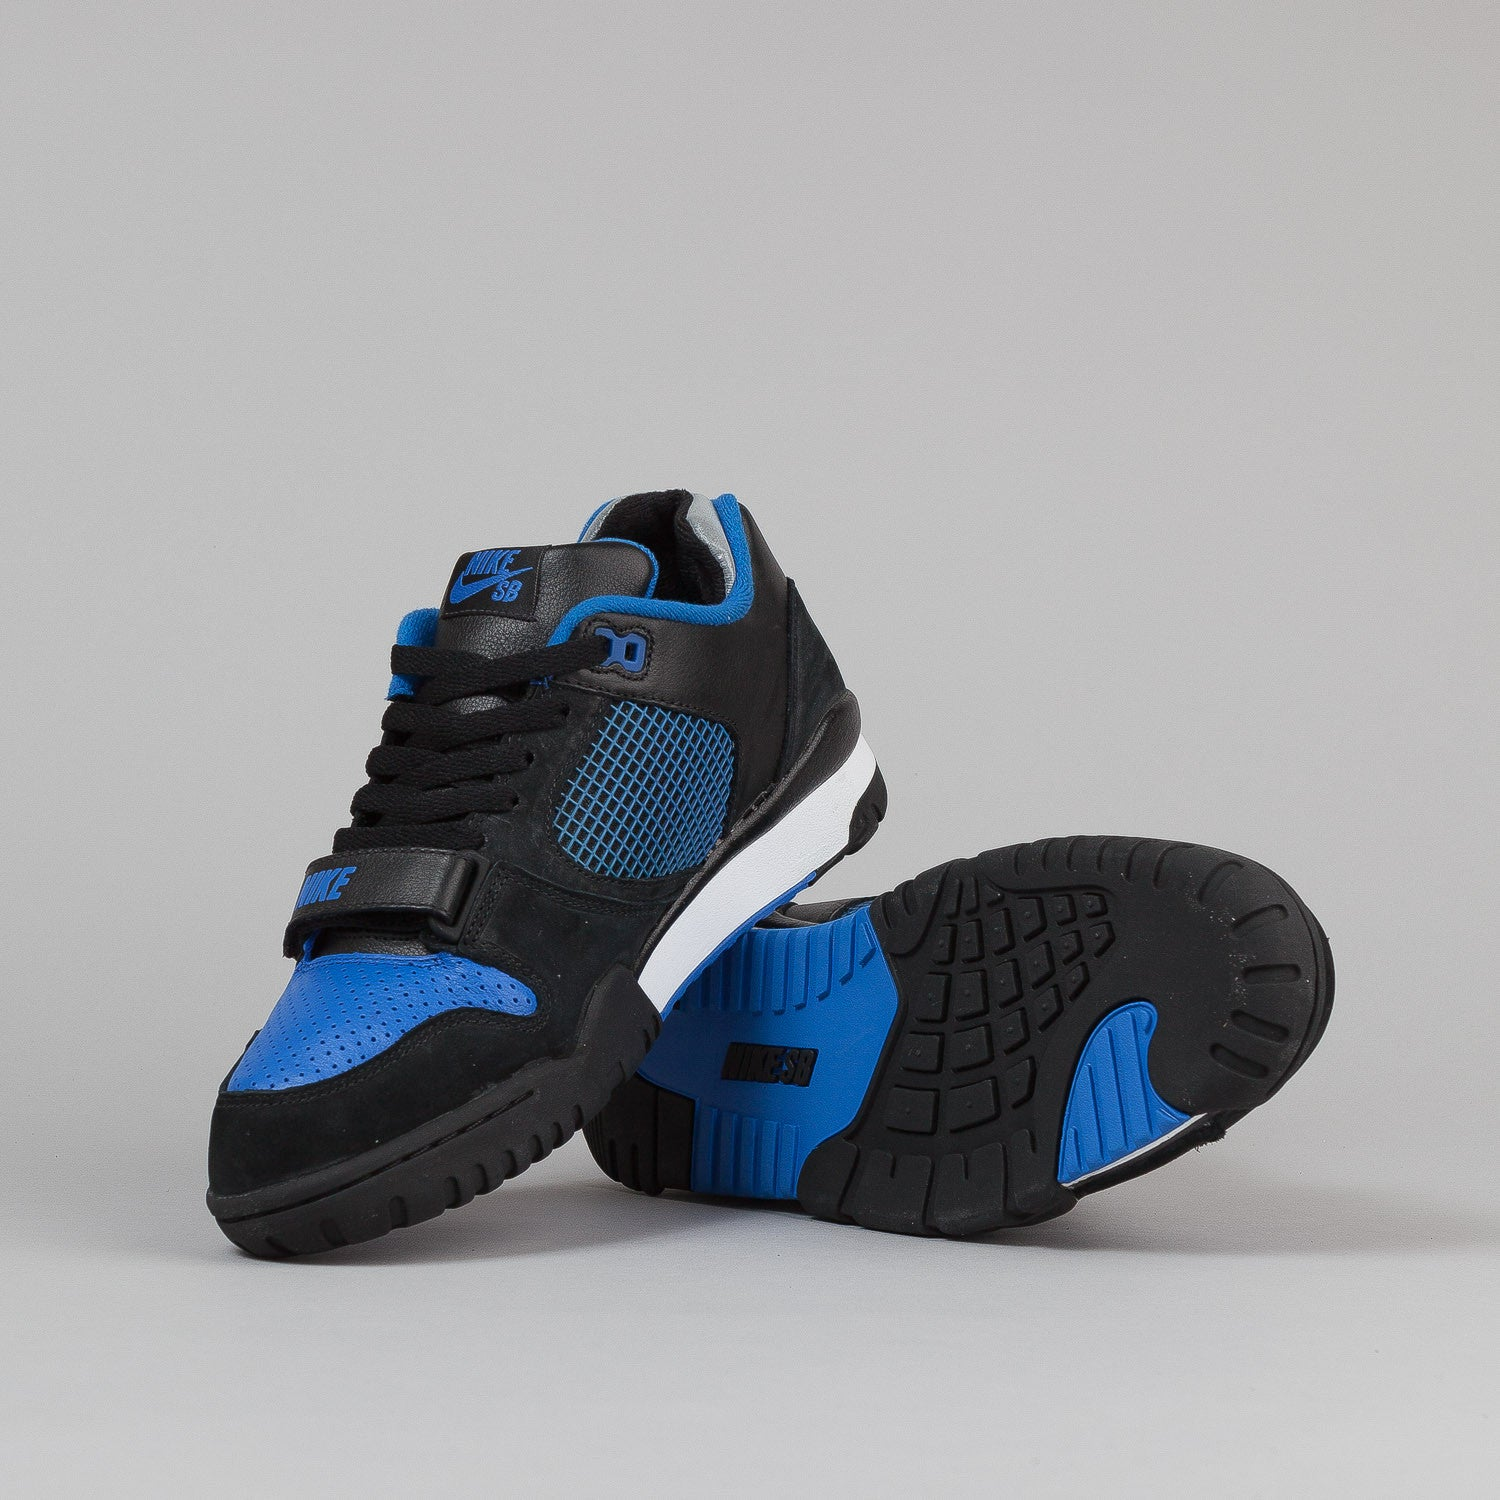 Nike SB Air Trainer 2 Shoes - Black / Royal Blue